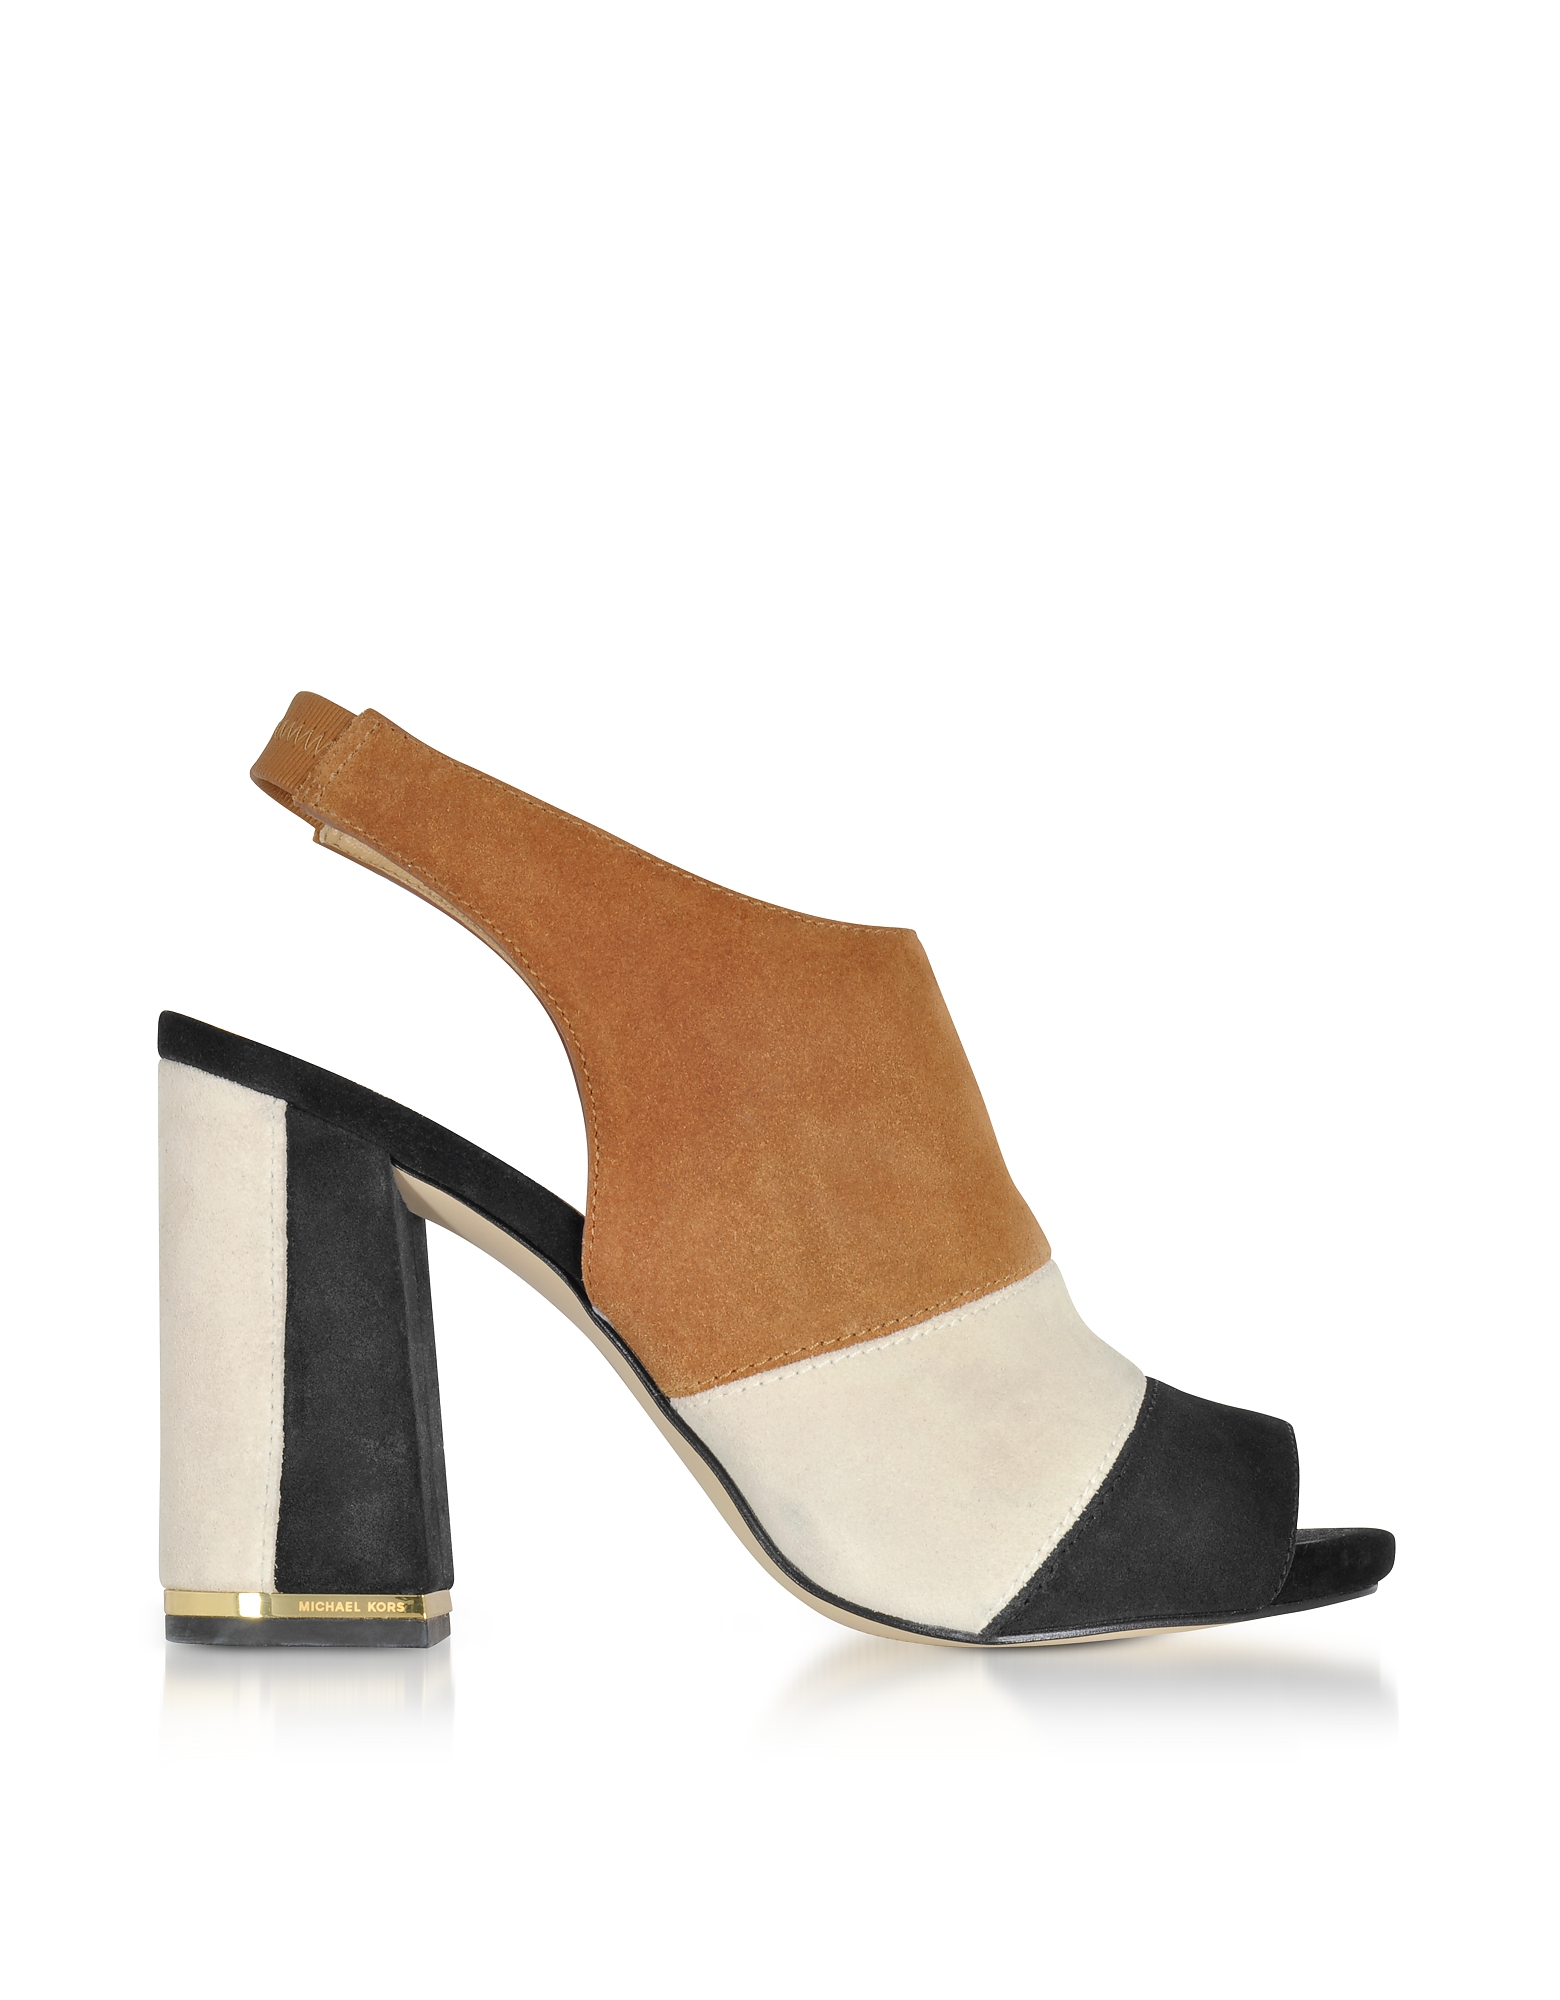 Michael Kors Shoes, Anise Black and Acorn Suede Open Toe Sandals